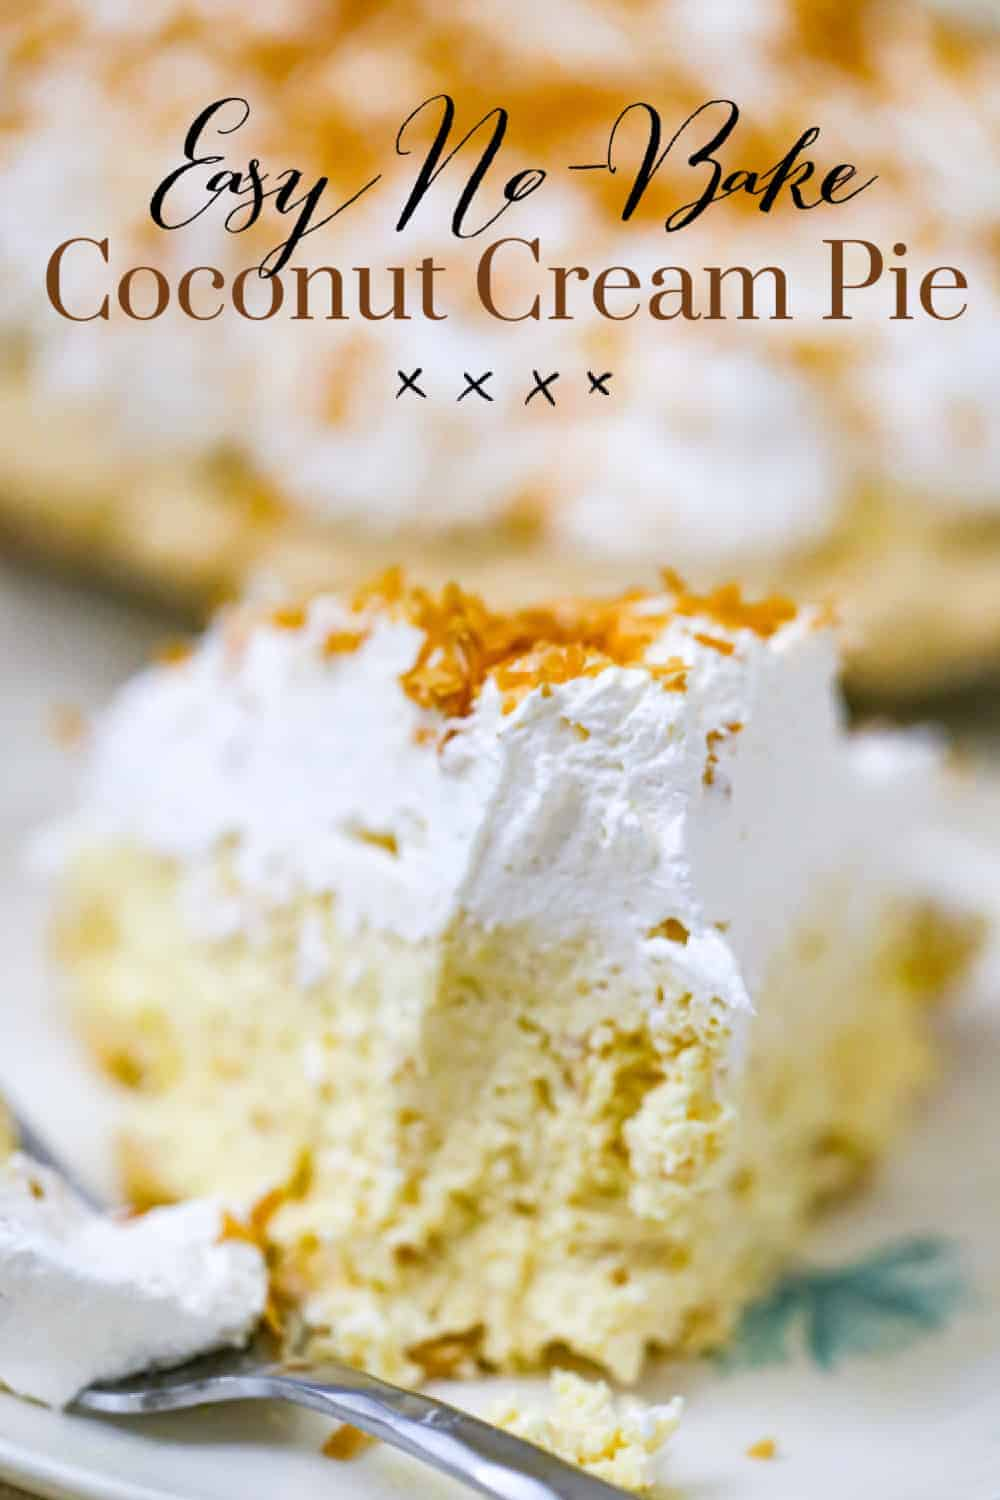 Easy No-Bake Coconut Cream Pie!